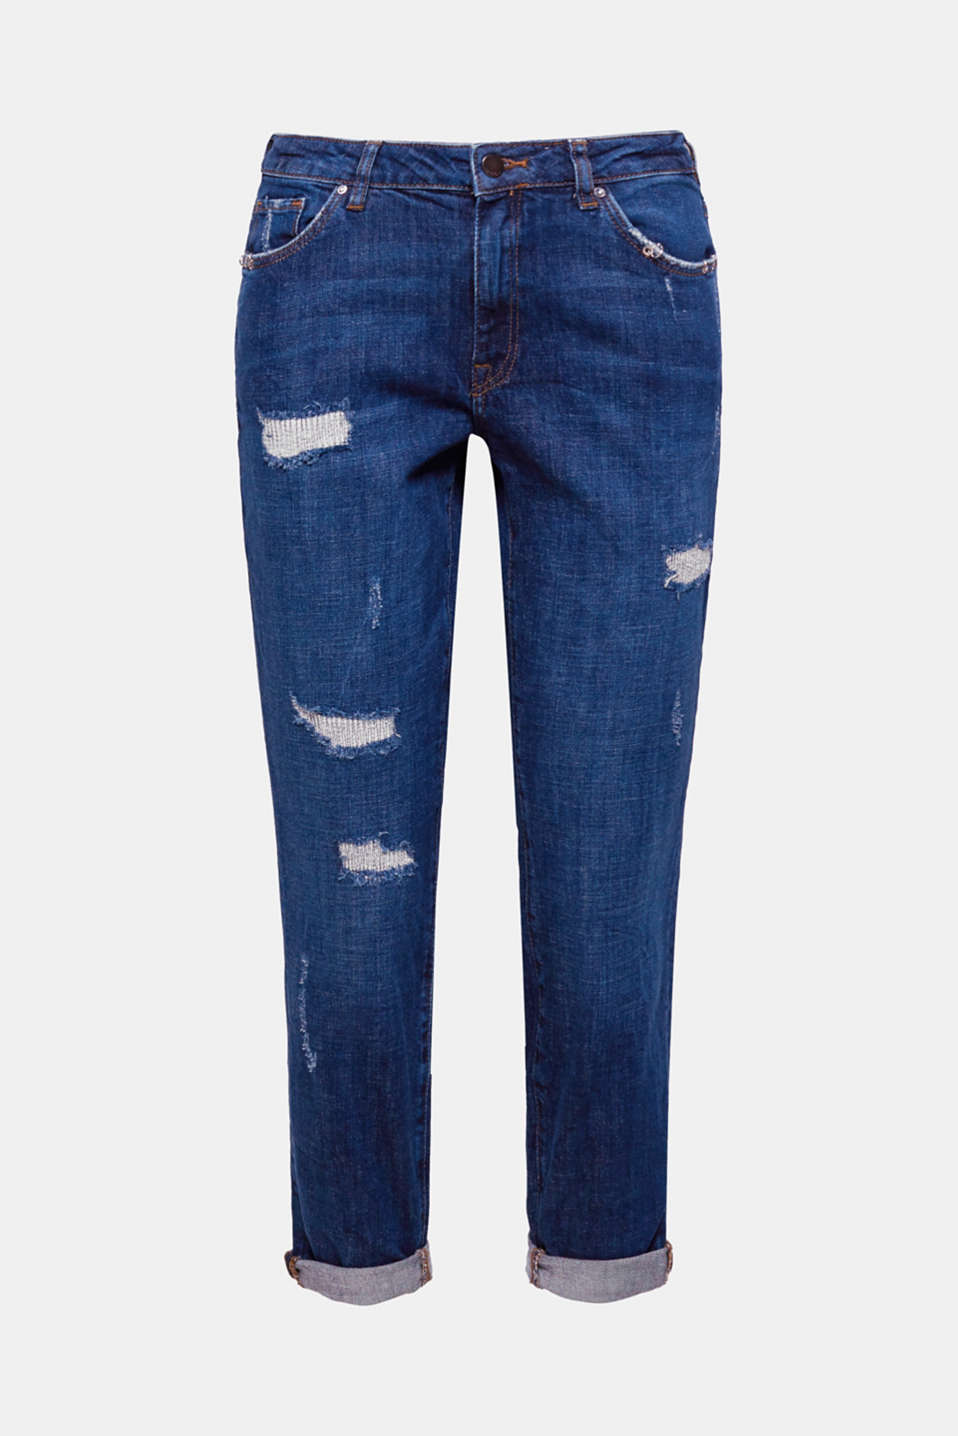 Destroyed-effekter og piercingdetaljer på lommerne giver disse stumpede jeans et smart rock-look.